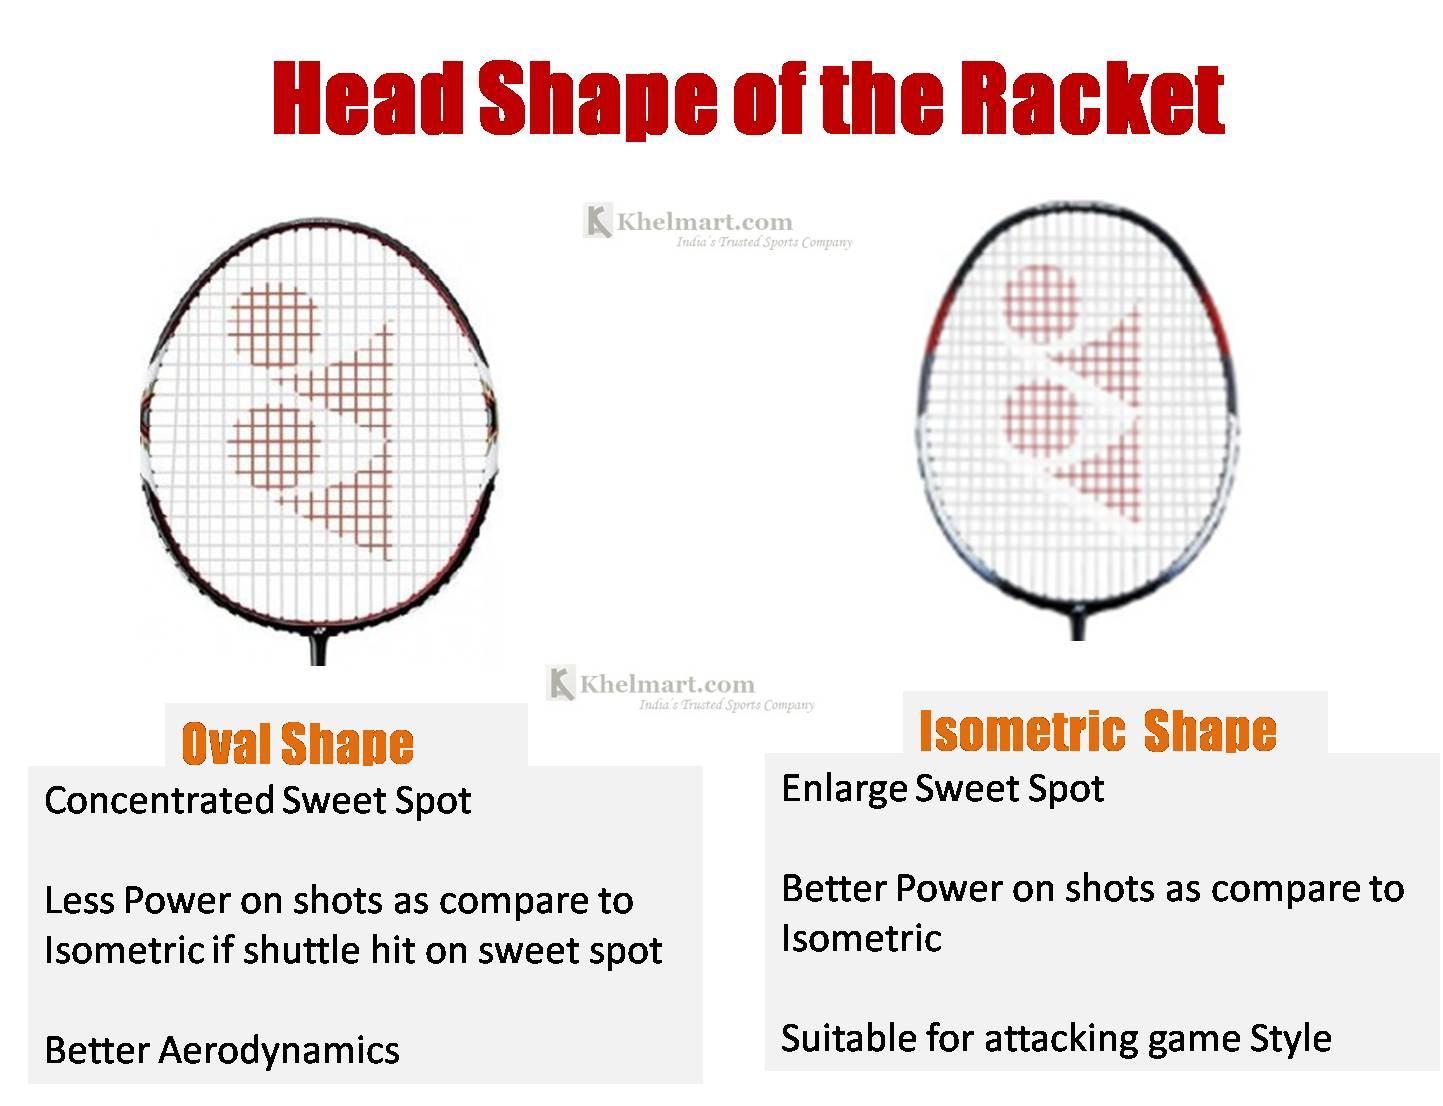 Racket_Head_SHape_Badminton_racket_Khelmart